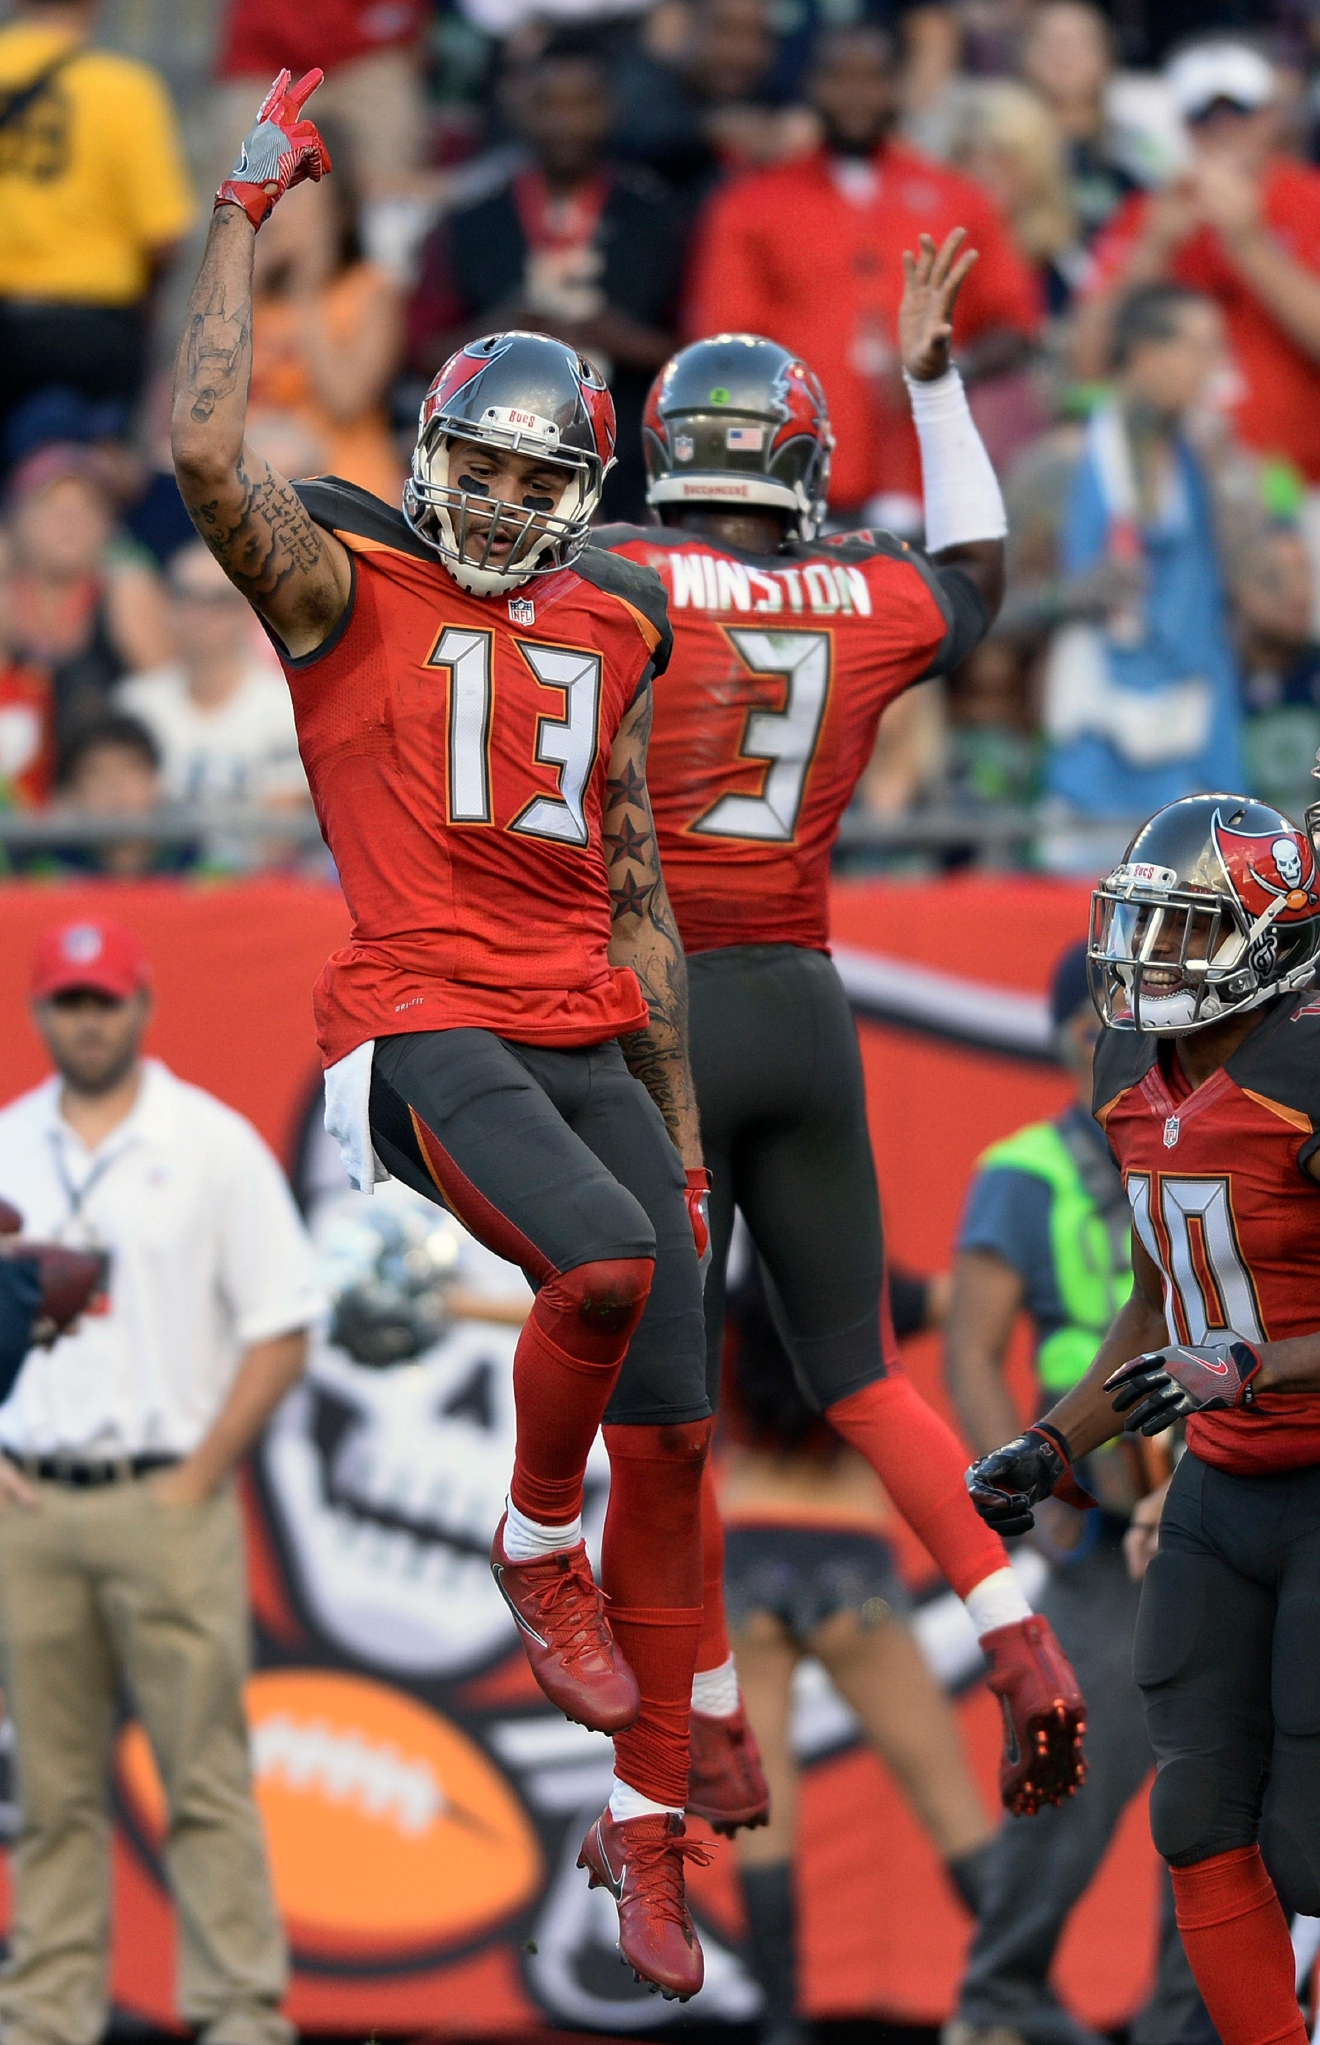 Tampa Bay Buccaneers wide receiver Mike Evans (13) celebrates with quarterback Jameis Winston (3) after Evans caught a 23-yard touchdown reception against the Seattle Seahawks during the second quarter of an NFL football game Sunday, Nov. 27, 2016, in Tampa, Fla. (AP Photo/Jason Behnken)